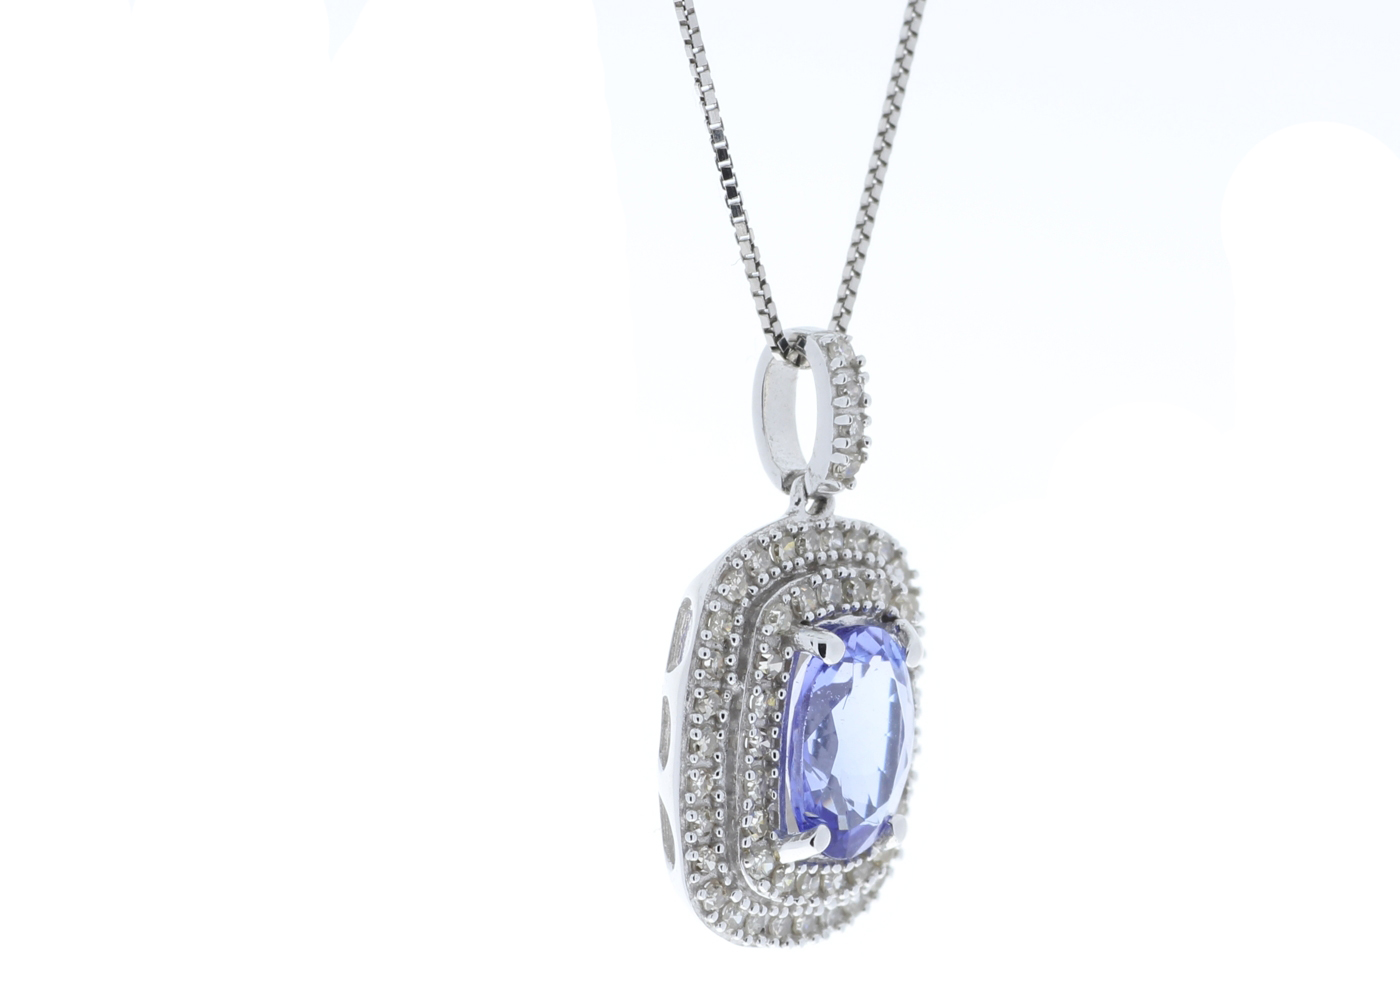 9ct White Gold Oval Tanzanite And Diamond Cluster Pendant 0.28 Carats - Image 3 of 6